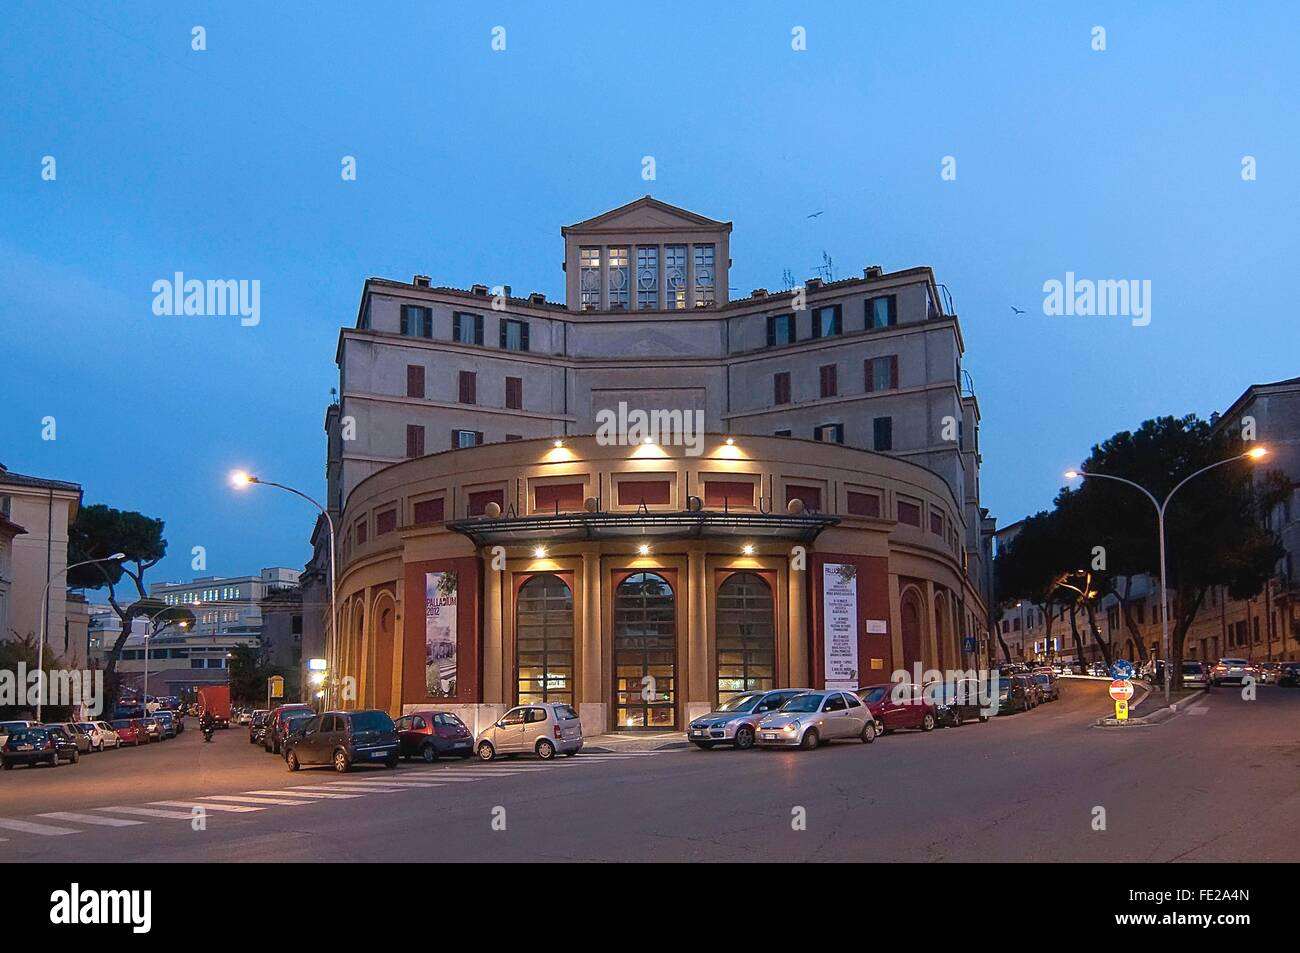 The Palladium building in Garbatella district, Rome, Italy    Credit © Fabio Mazzarella/Sintesi/Alamy Stock - Stock Image